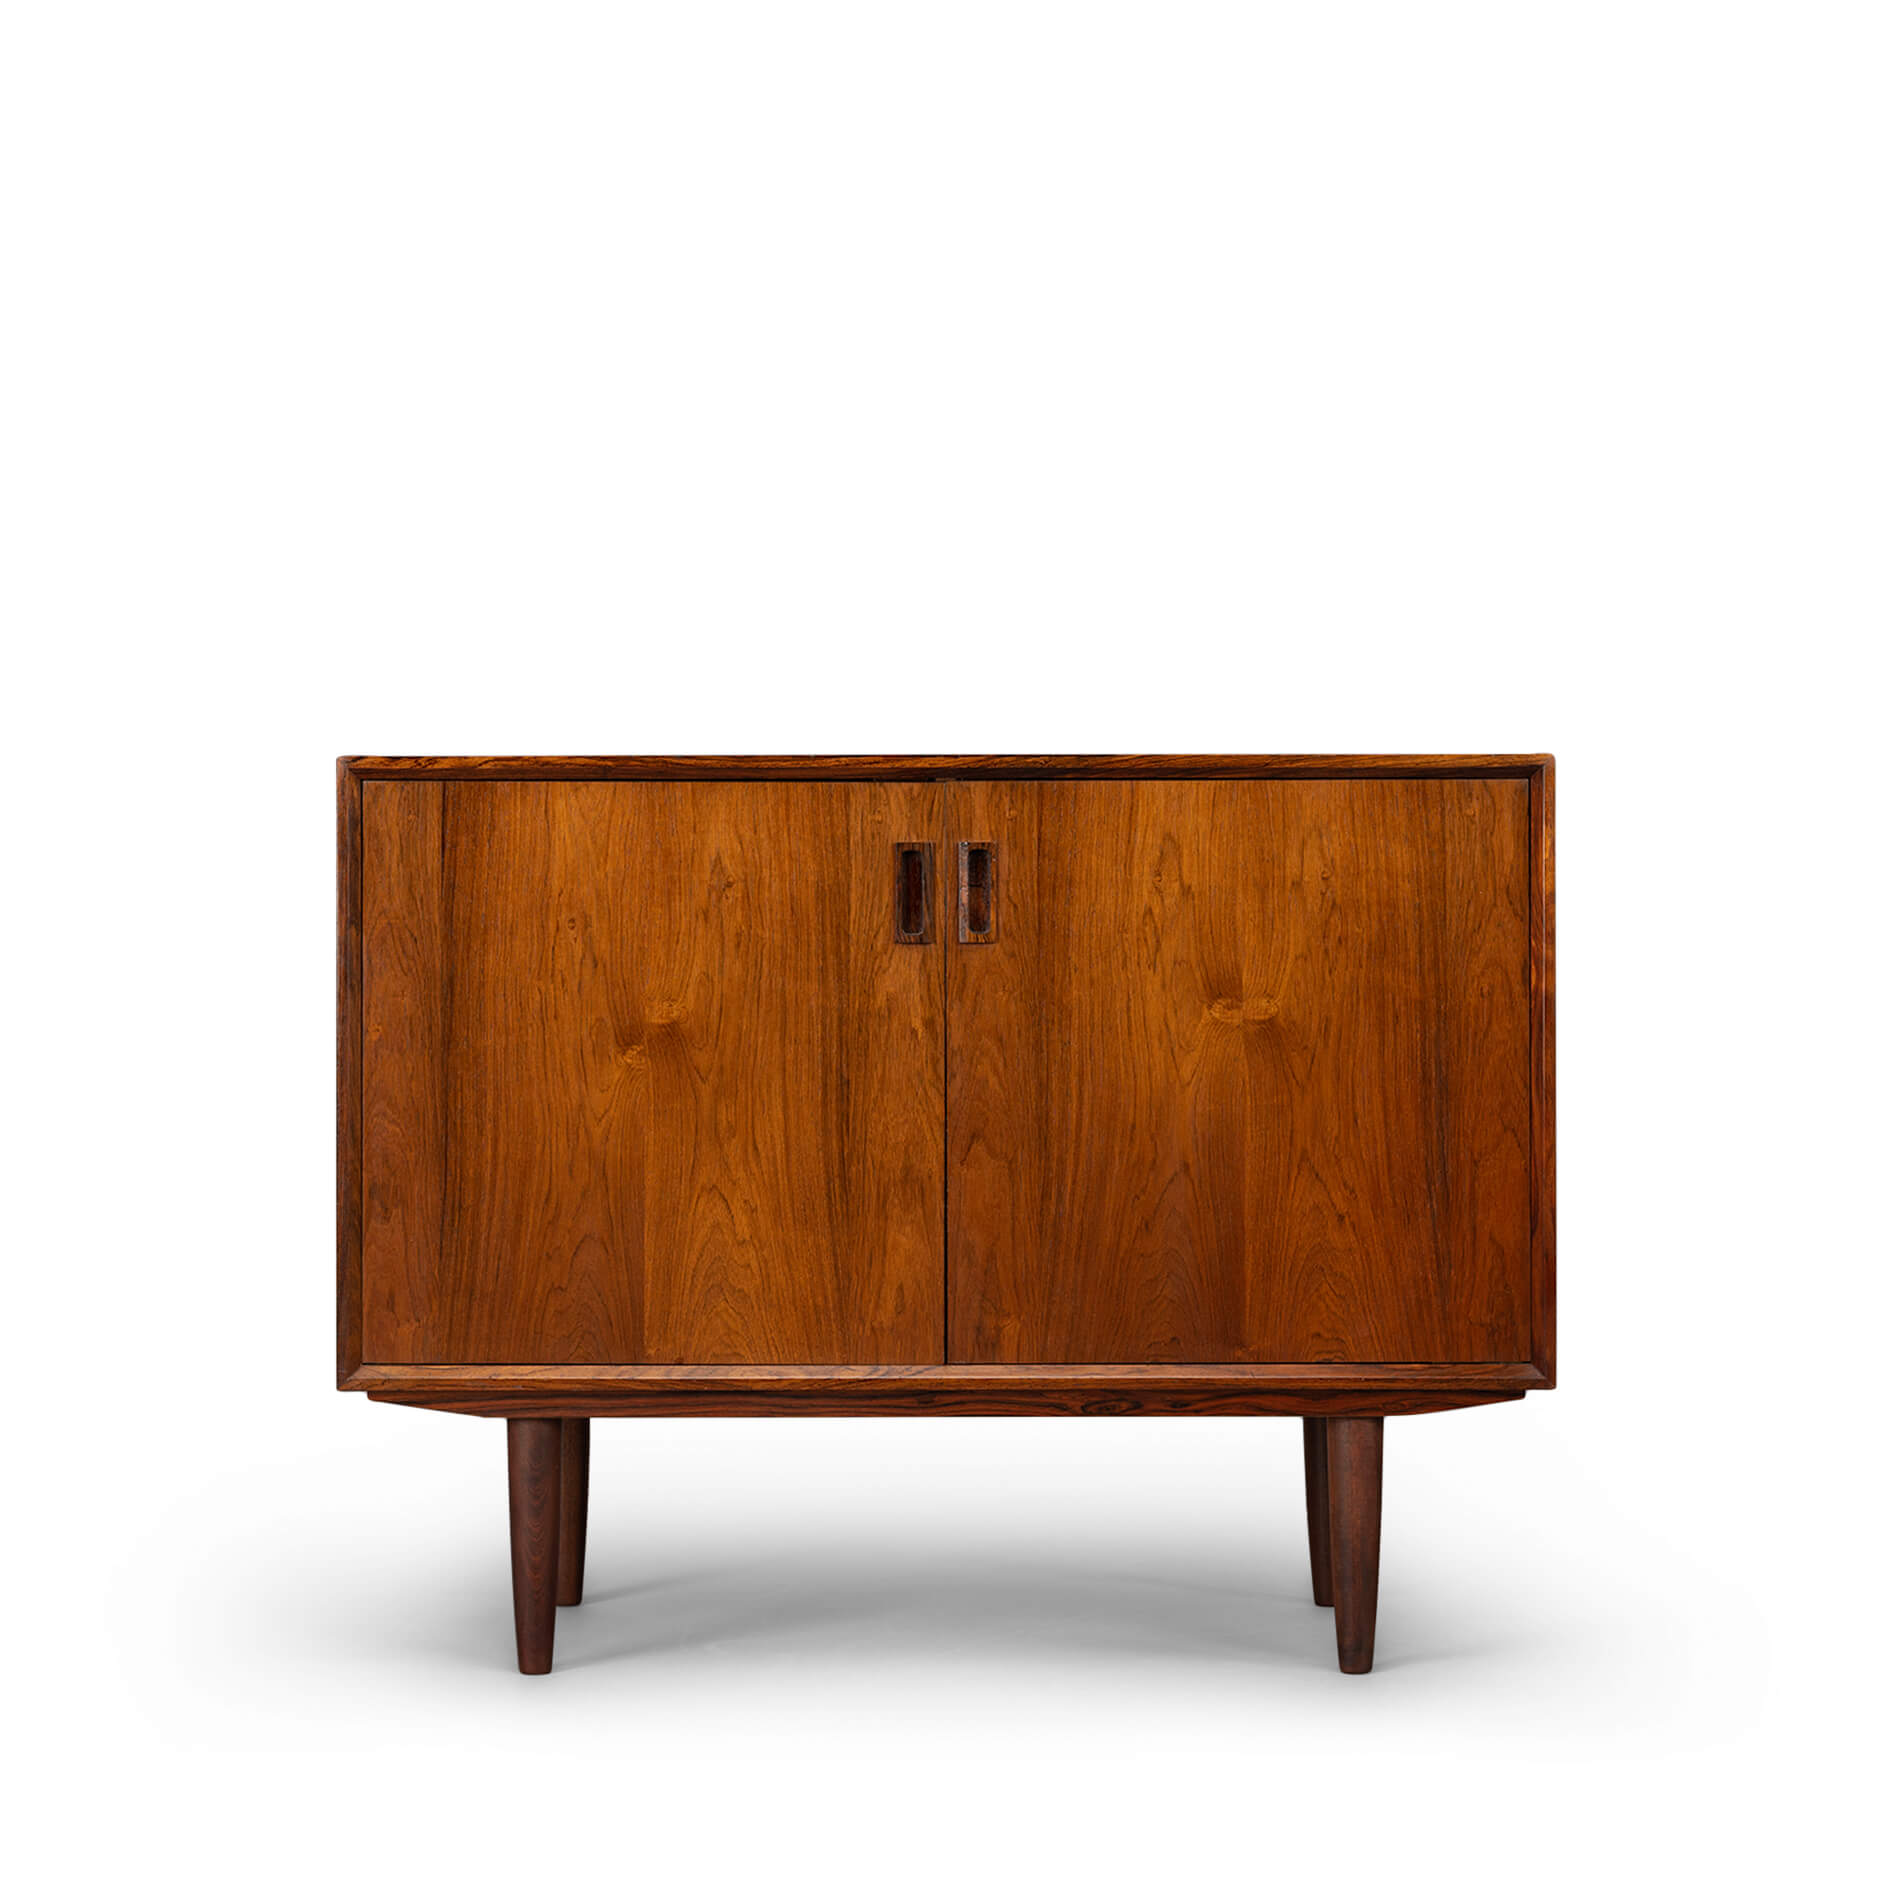 Vintage dressoir No. 1